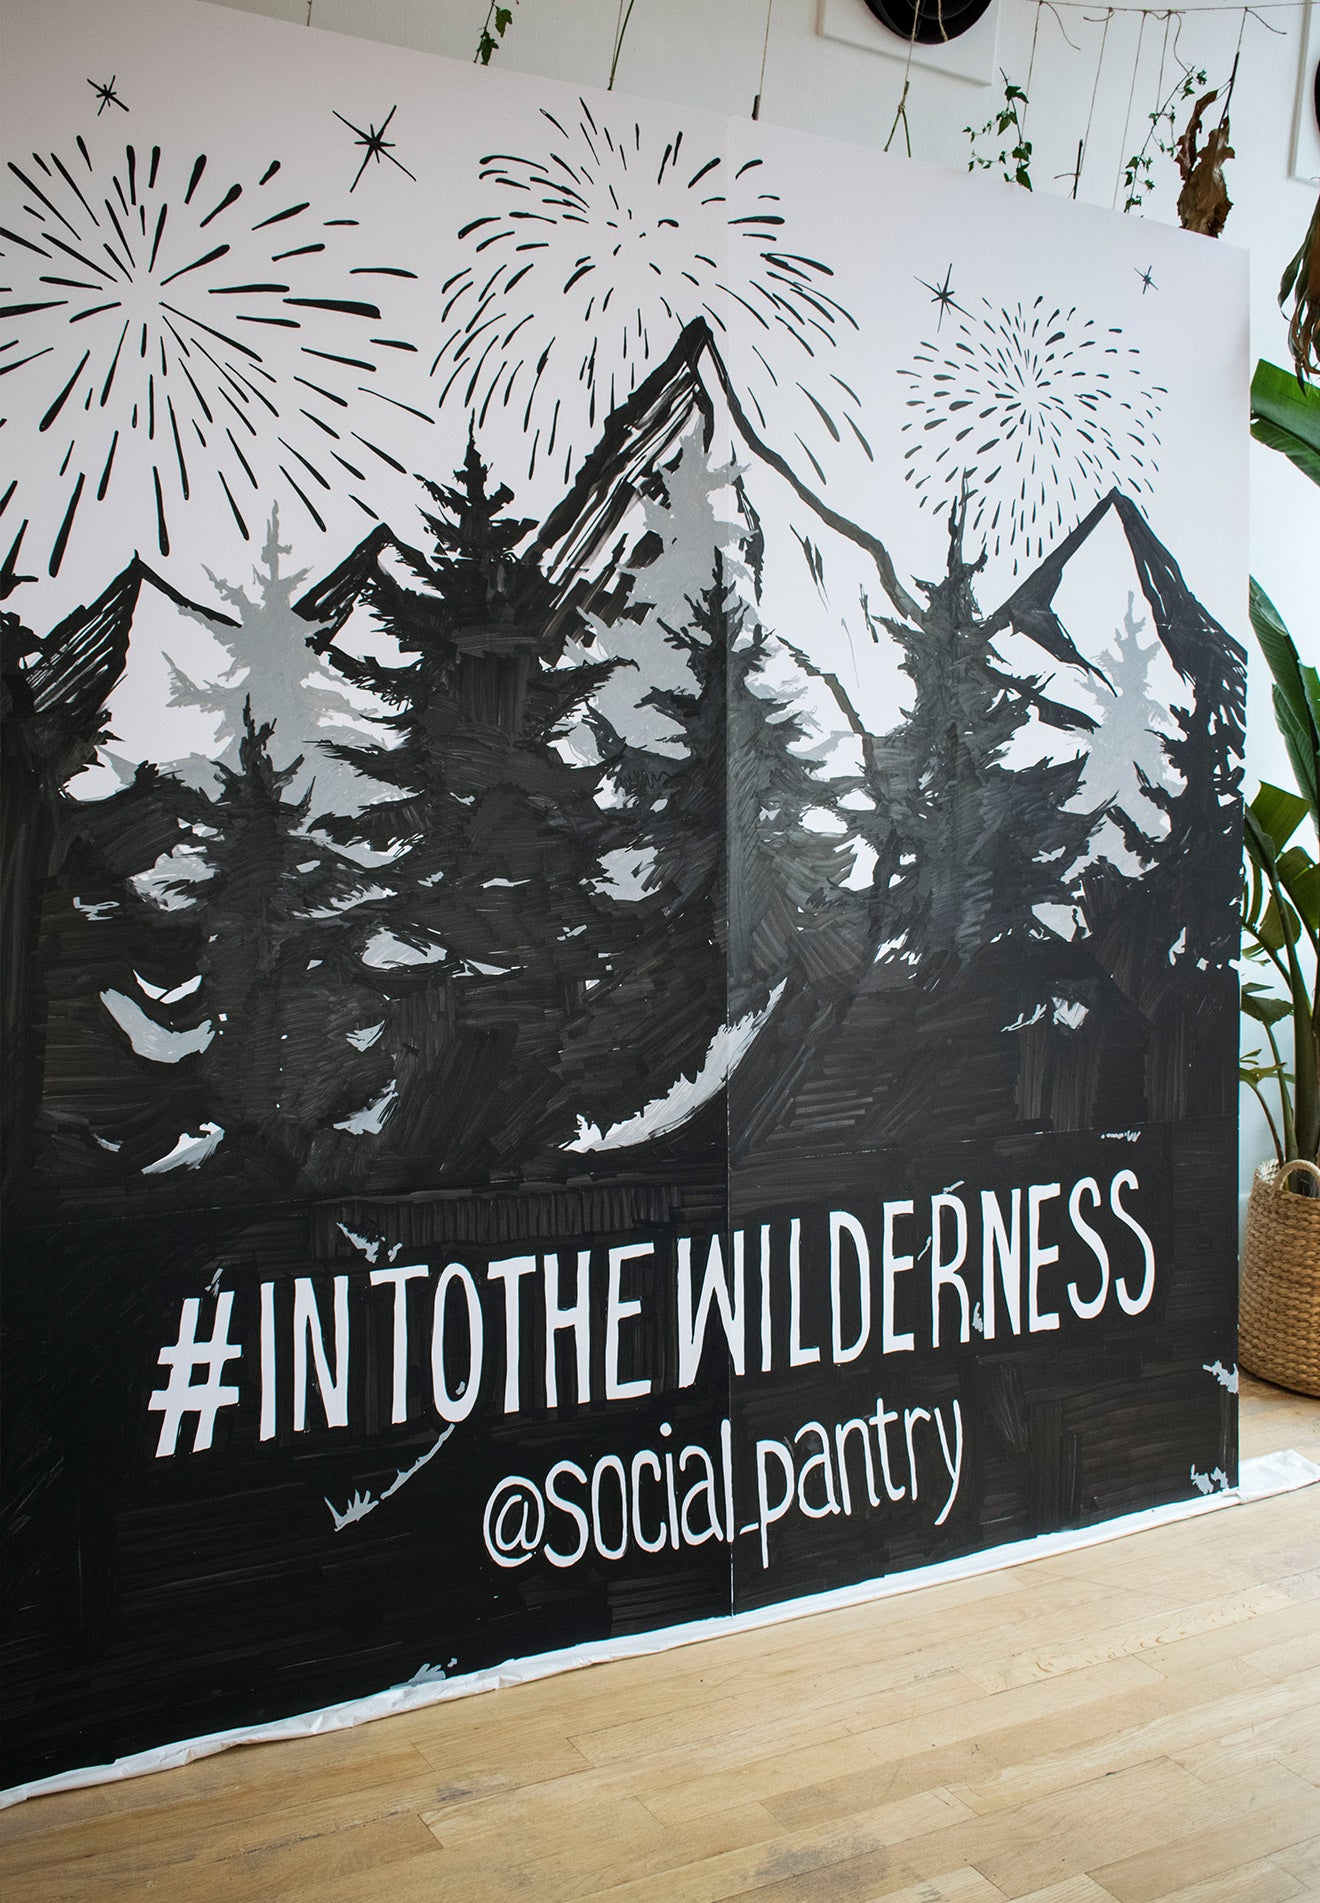 into the wilderness at social pantry Habitat